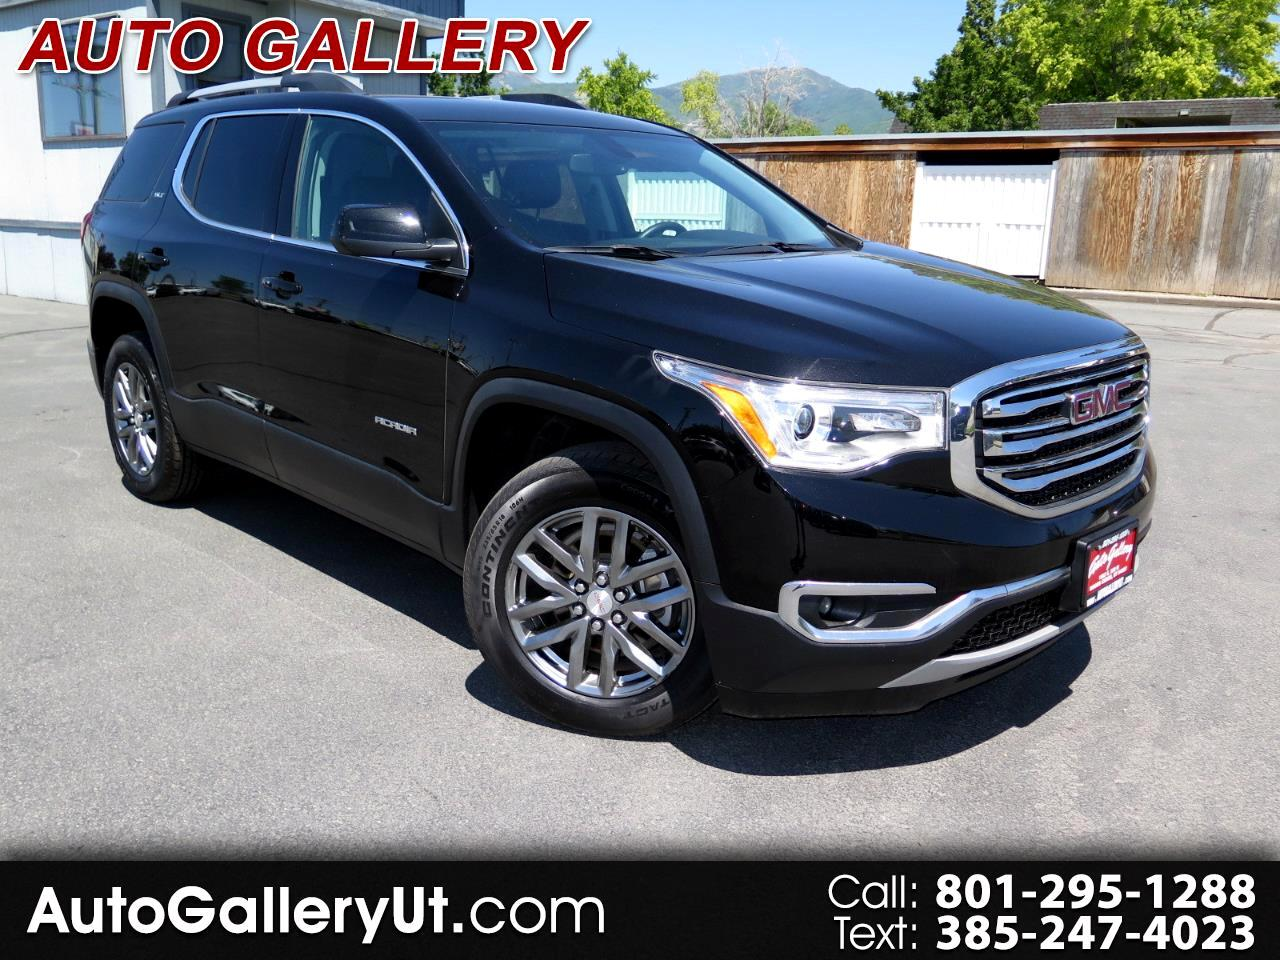 Used 2019 Gmc Acadia Awd 4dr Slt W Slt 1 For Sale In Woods Cross